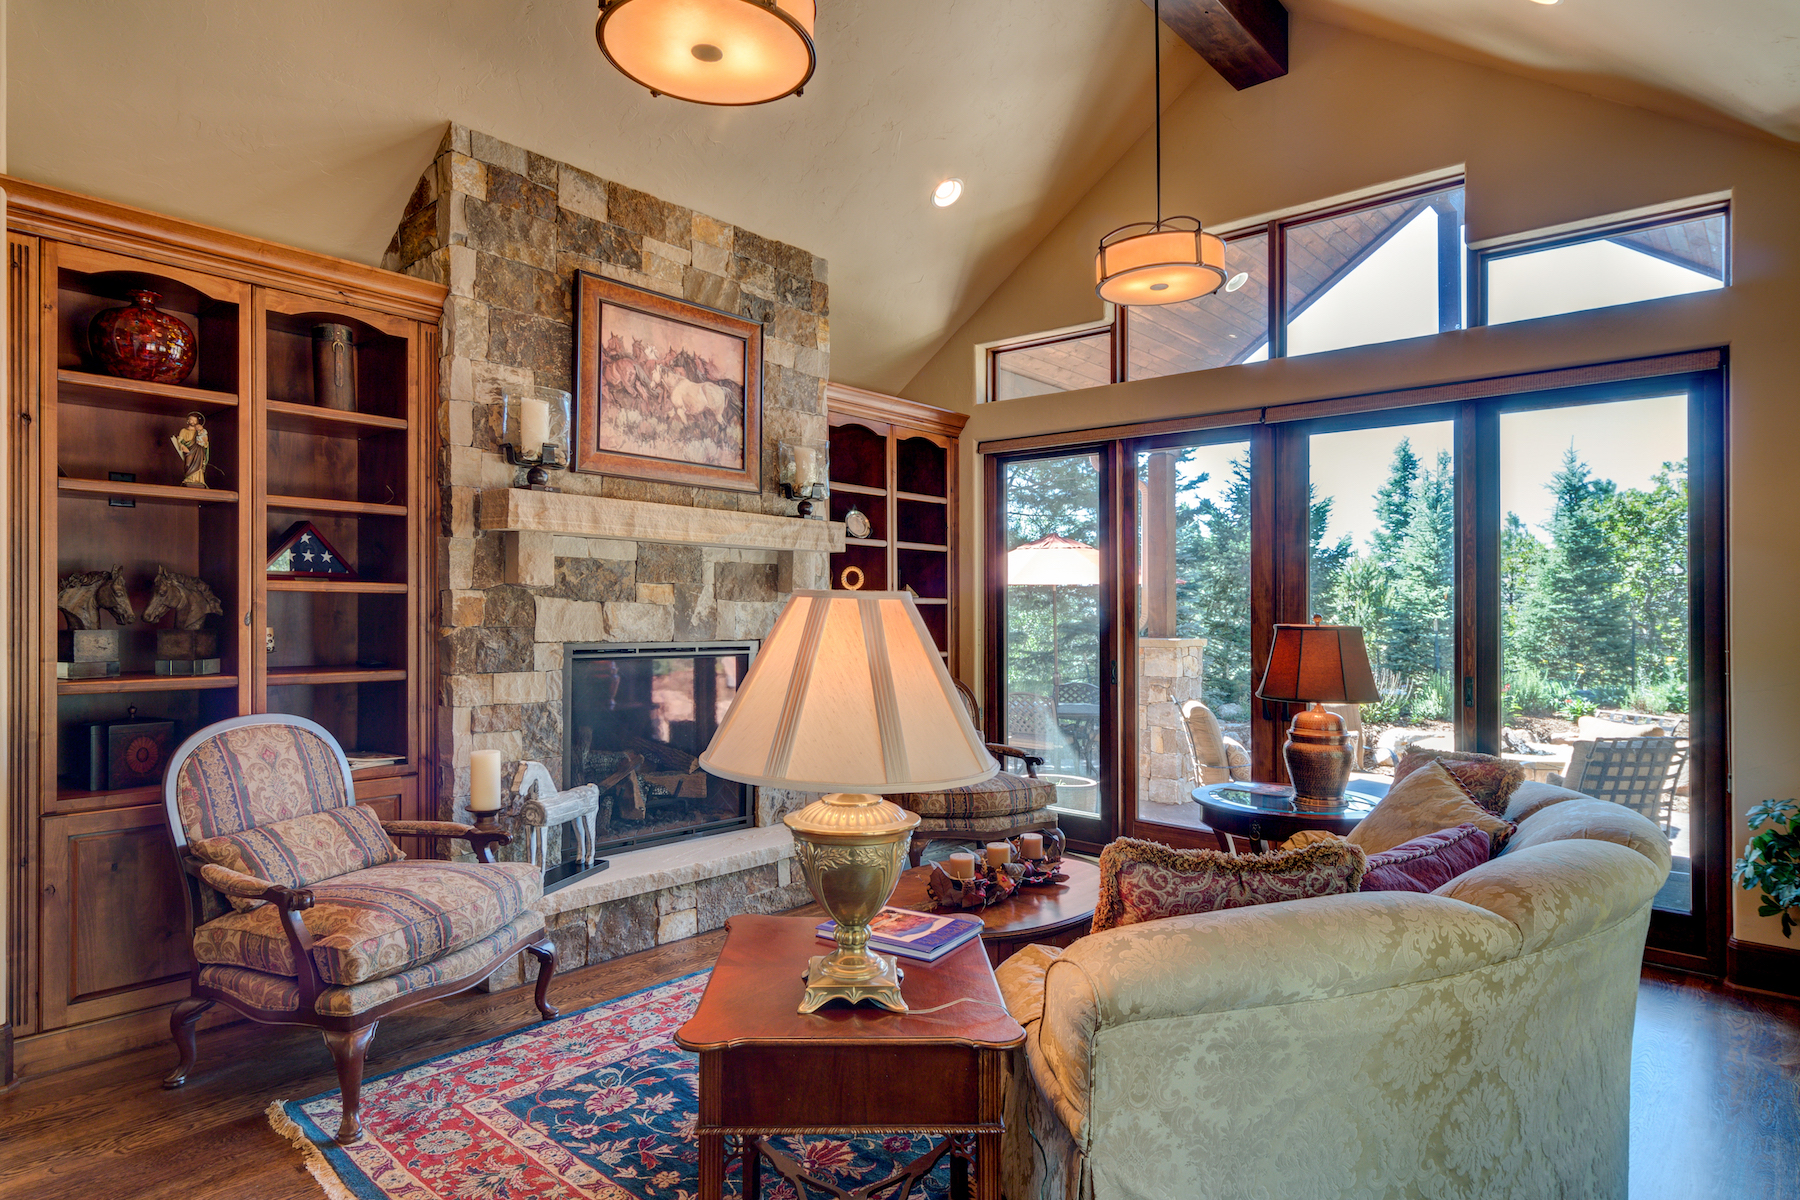 8 - Living Room Fireplace Flanked by Bookcases.jpg